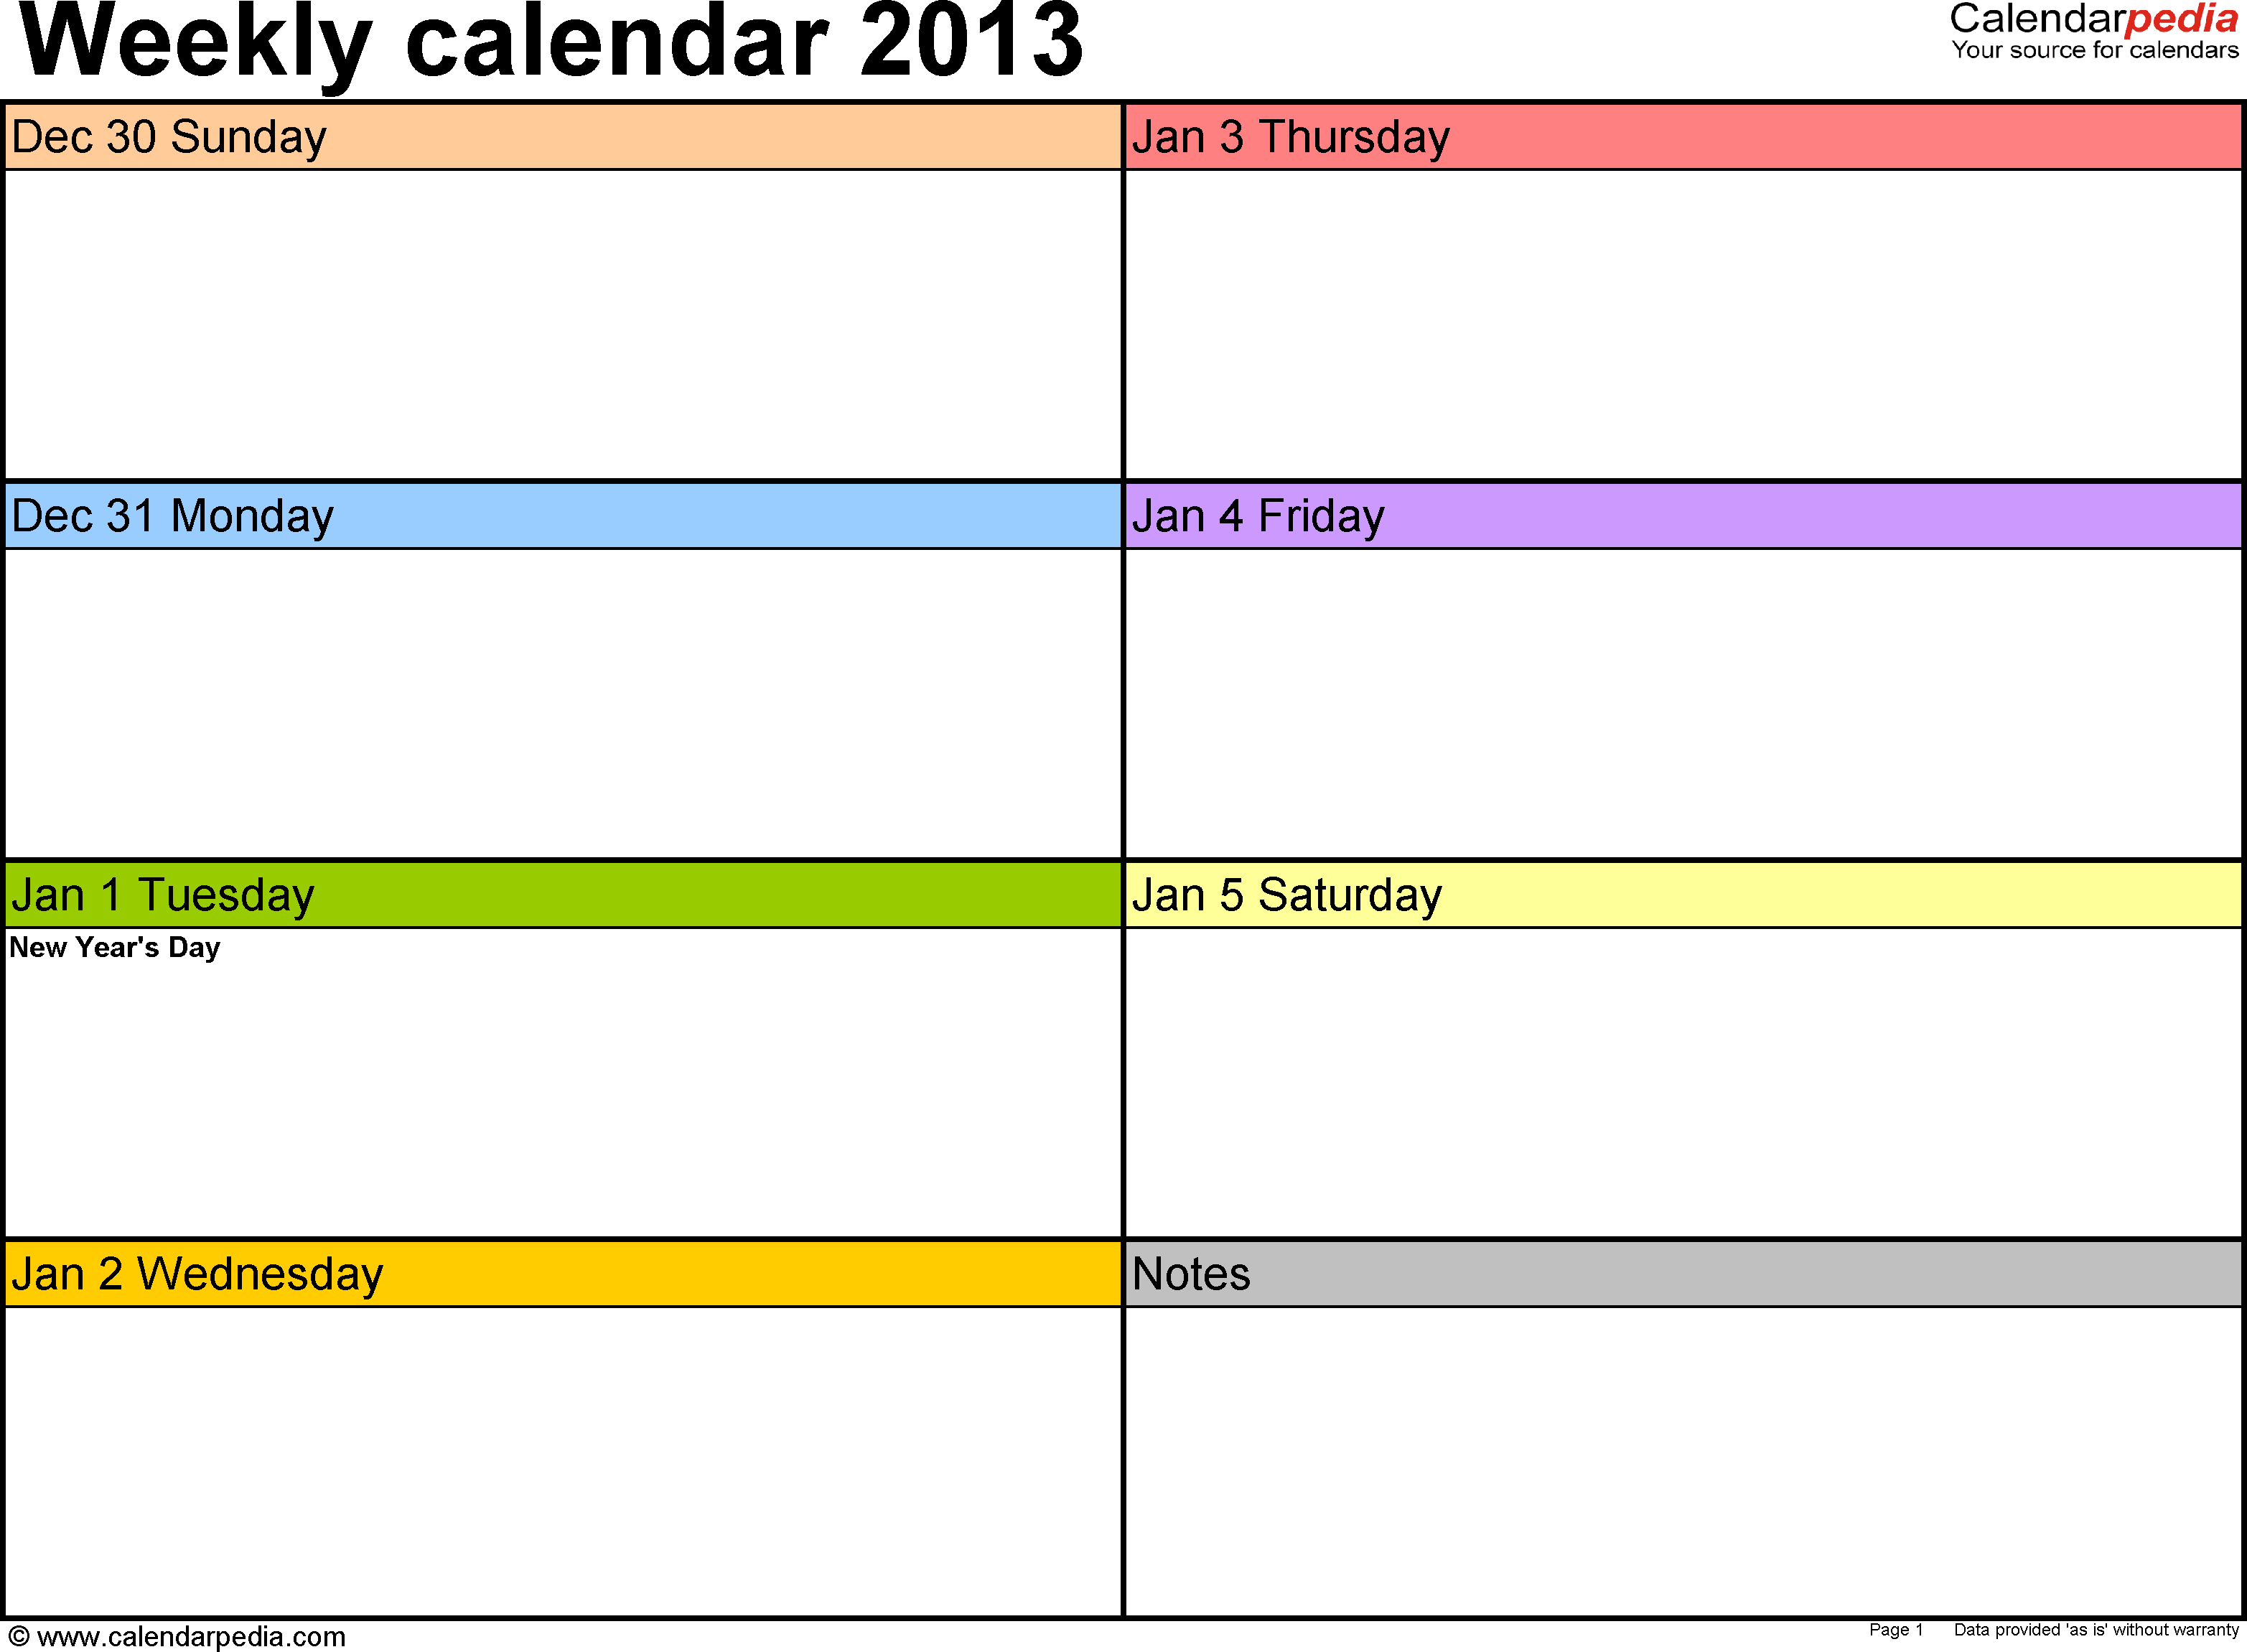 Weekly Calendars For